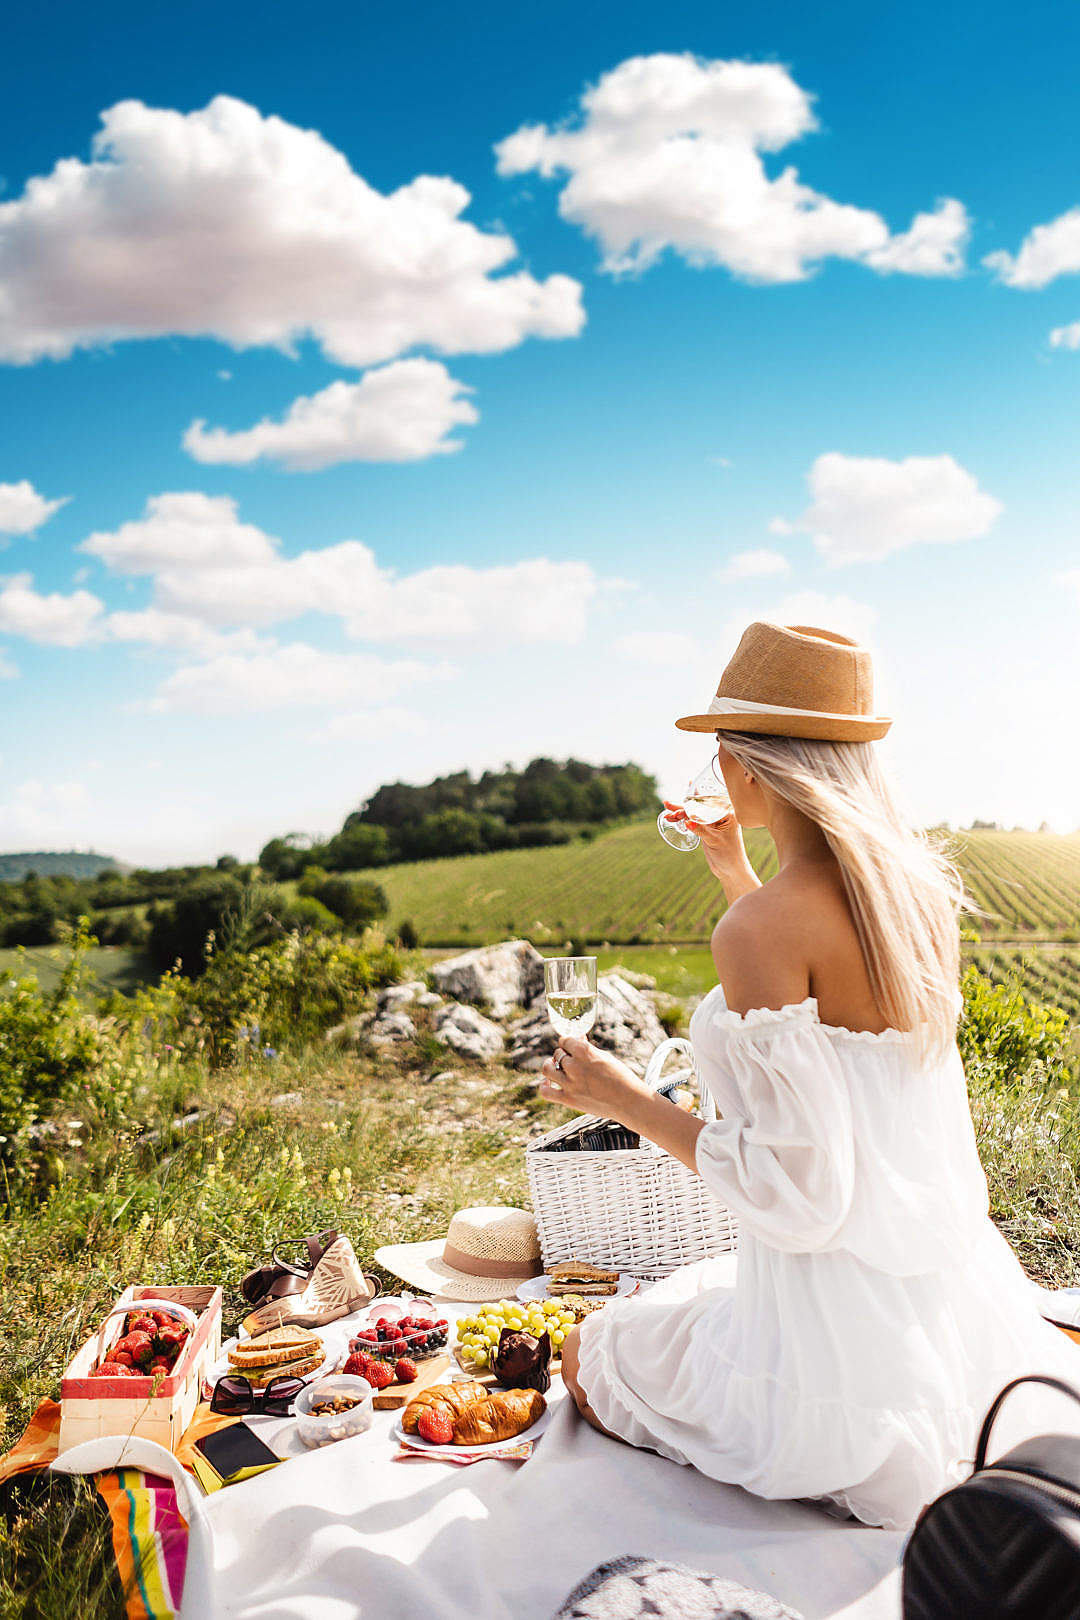 Download Young Woman Enjoying a Picnic FREE Stock Photo